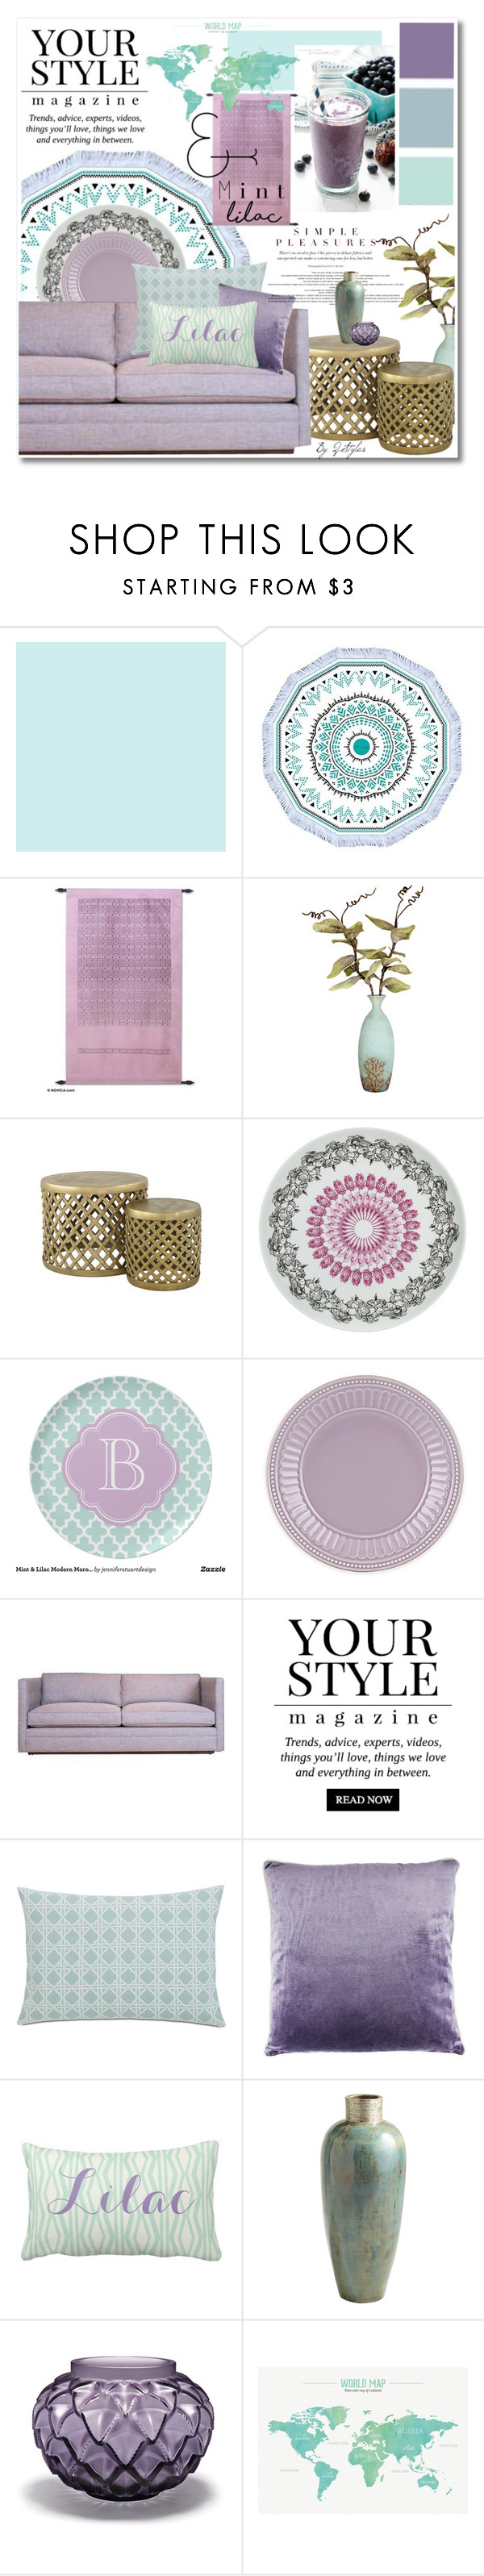 """""""HomeStyles : Mint&Lilac"""" by q-styles ❤ liked on Polyvore featuring interior, interiors, interior design, home, home decor, interior decorating, NOVICA, Dot & Bo, Jayson Home and Pussycat"""